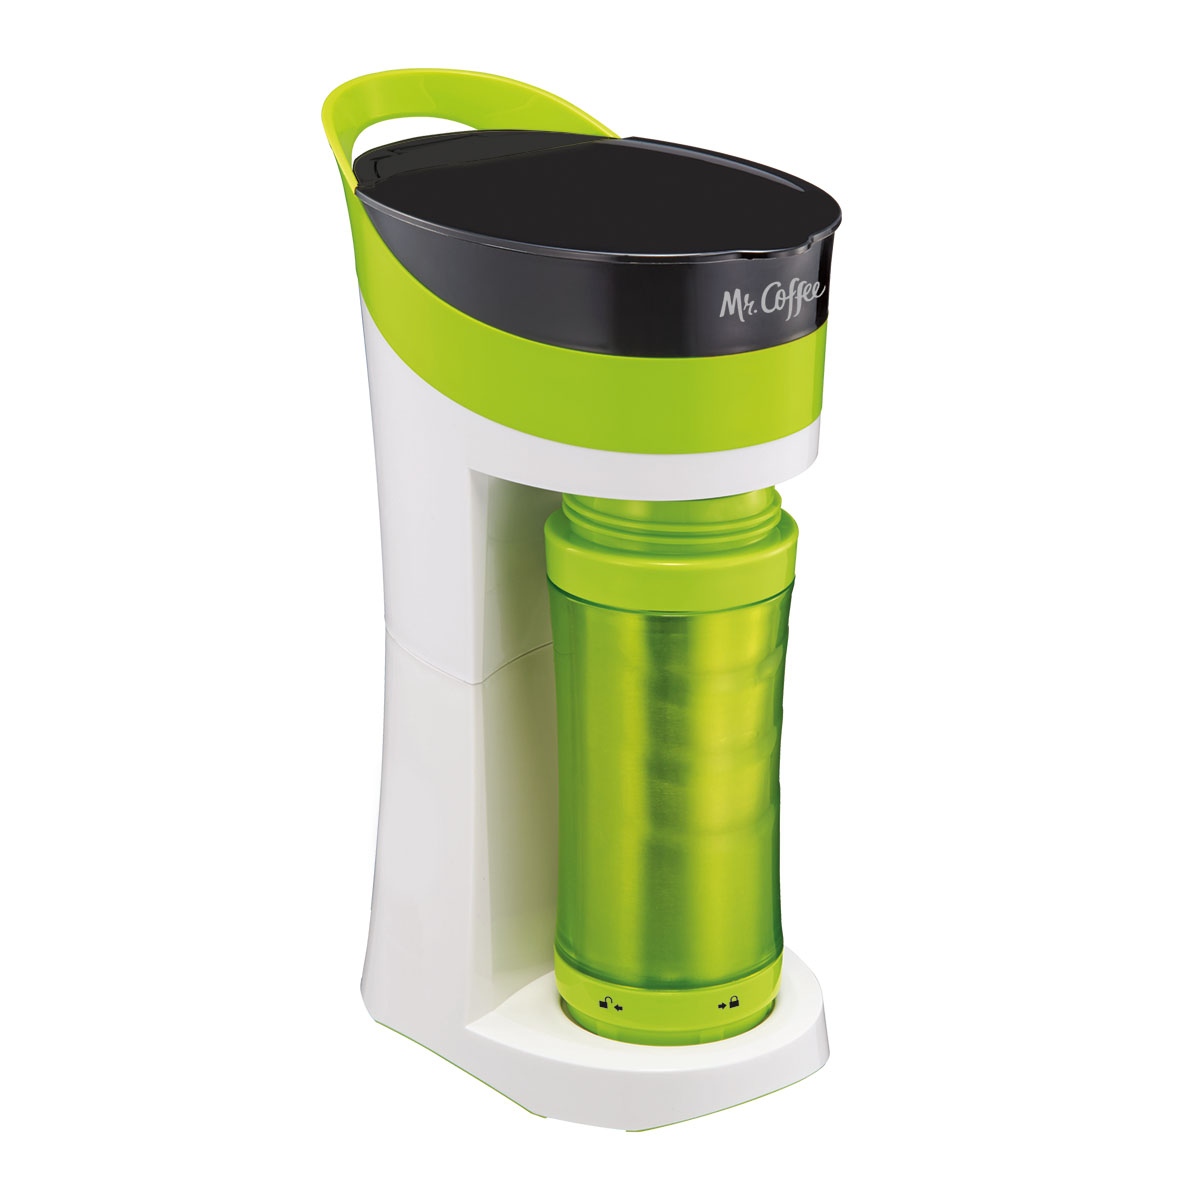 Coffee Maker That Fits Travel Mug : Mr. Coffee Pour! Brew! Go! Personal Grounds Coffee Maker with Travel Mug, Green